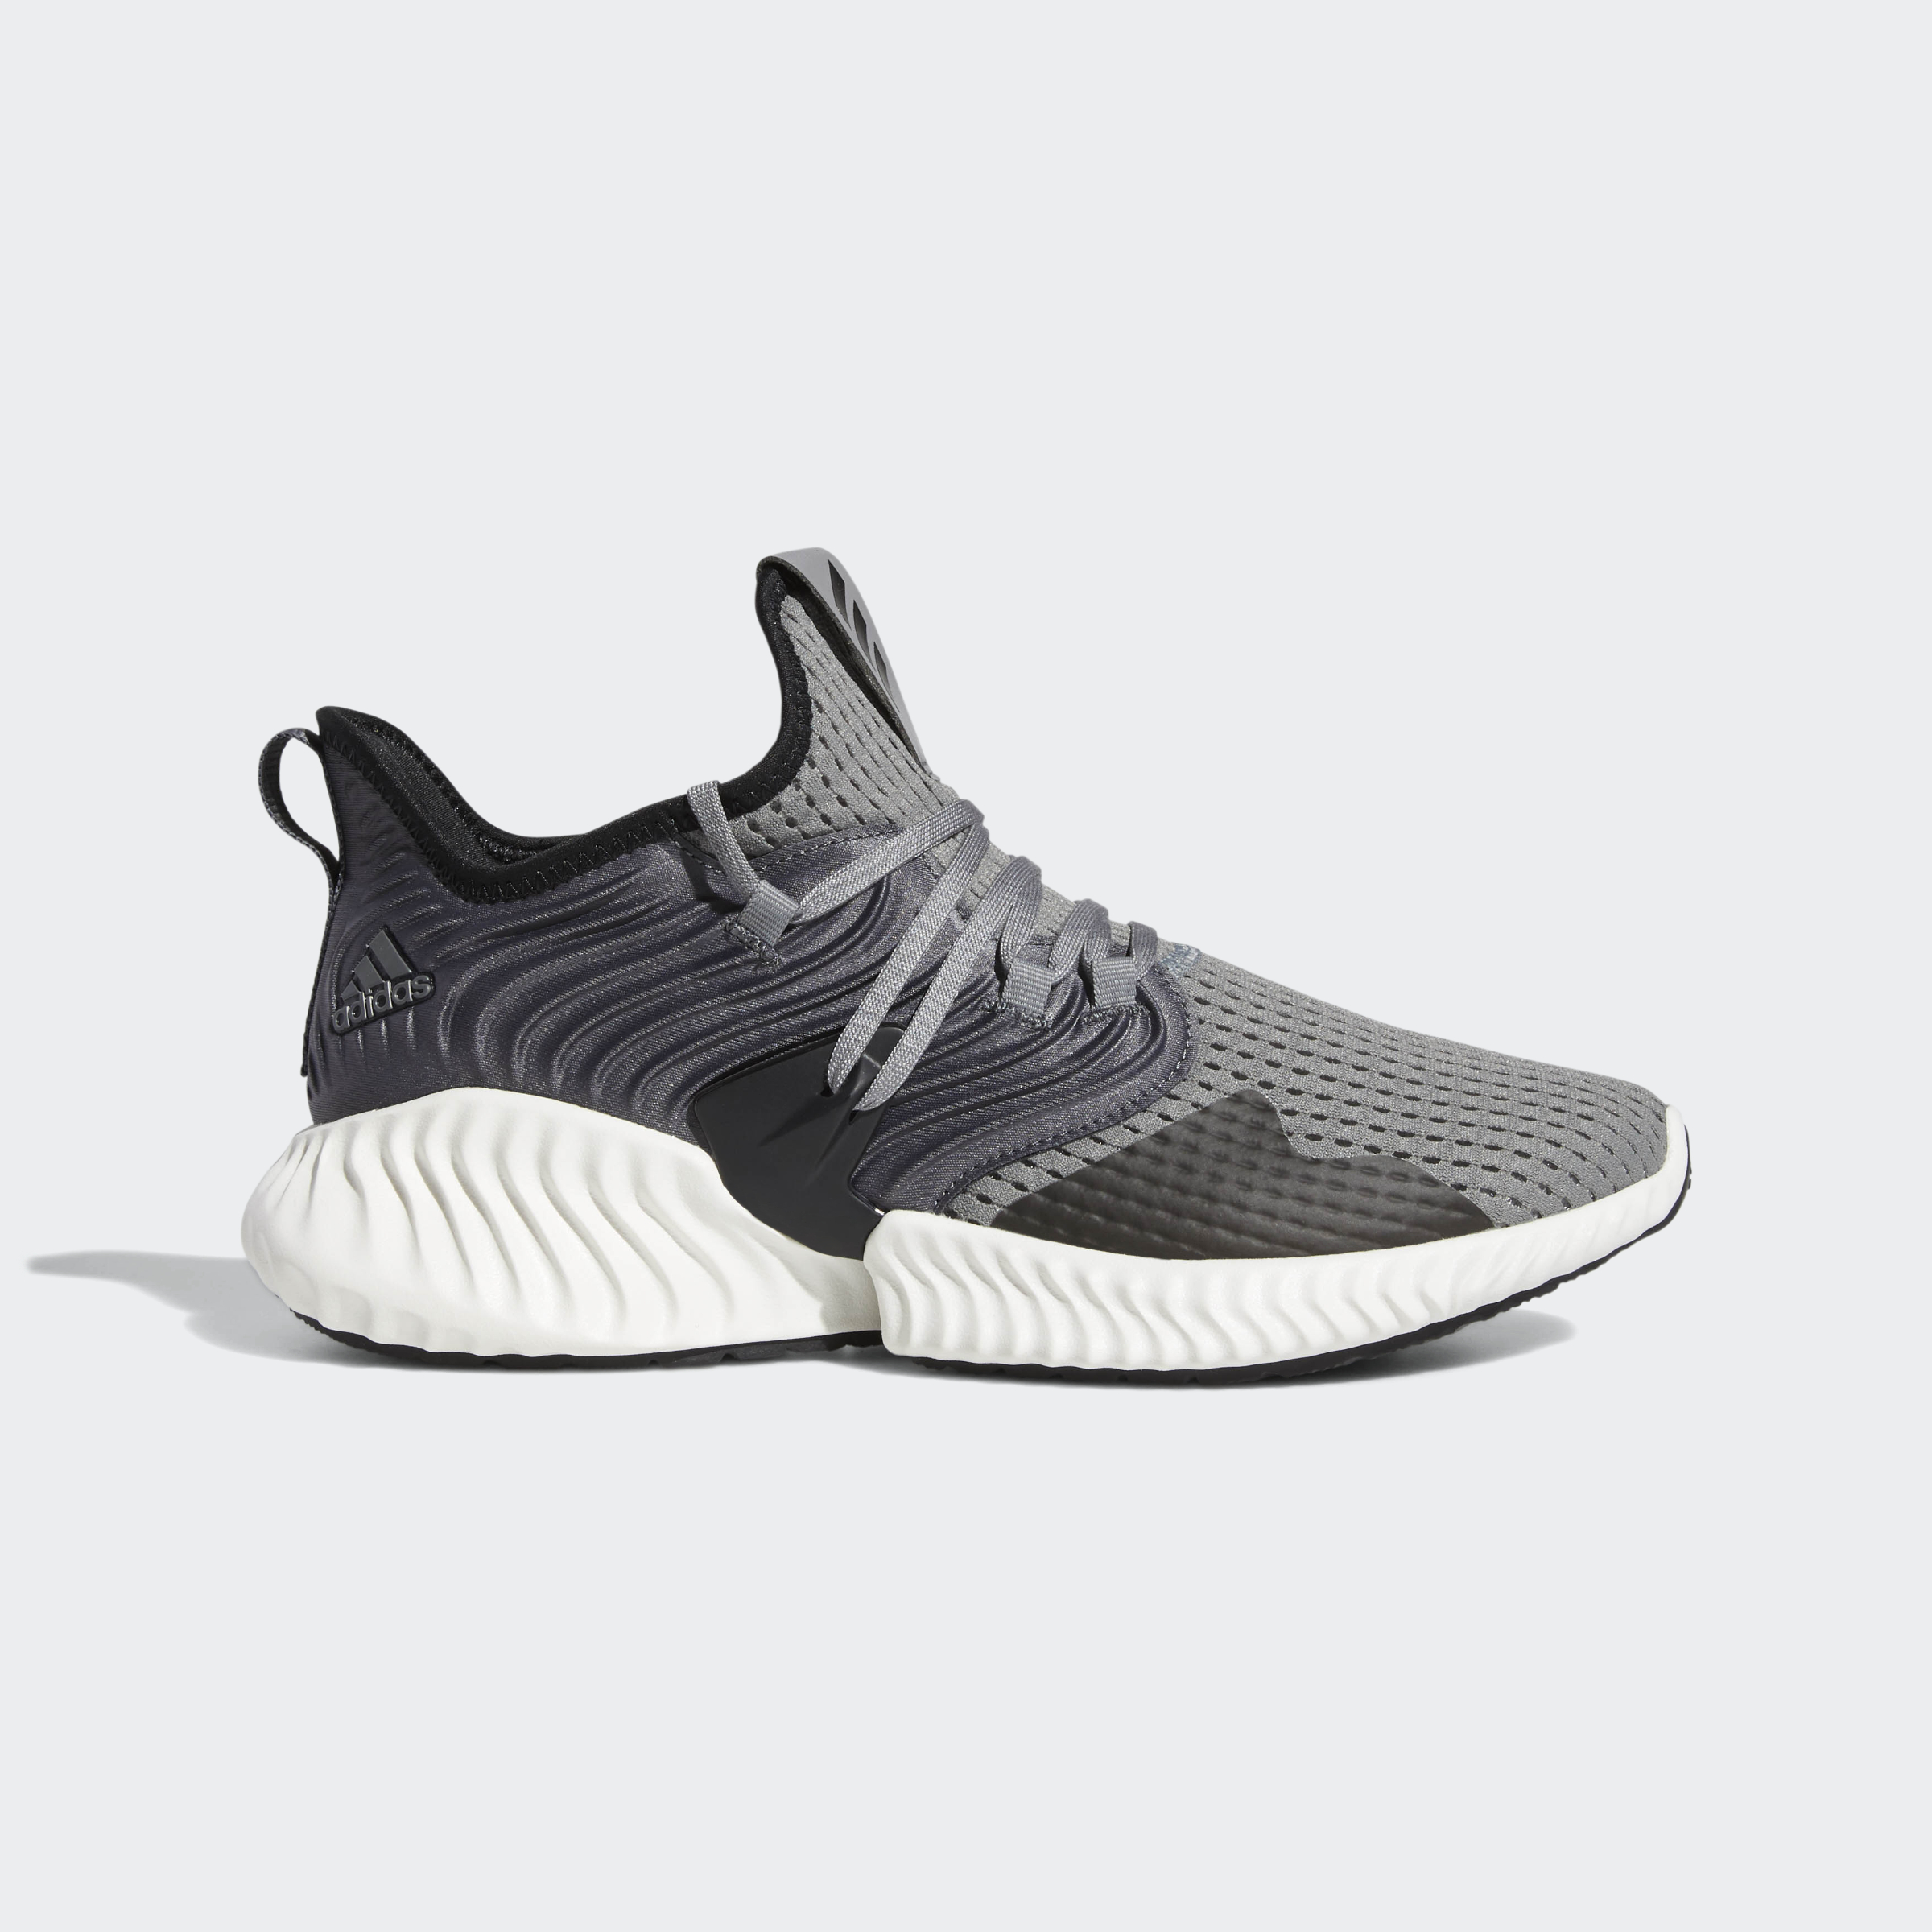 adidas-Alphabounce-Instinct-Clima-Shoes-Men-039-s-Athletic-amp-Sneakers thumbnail 12